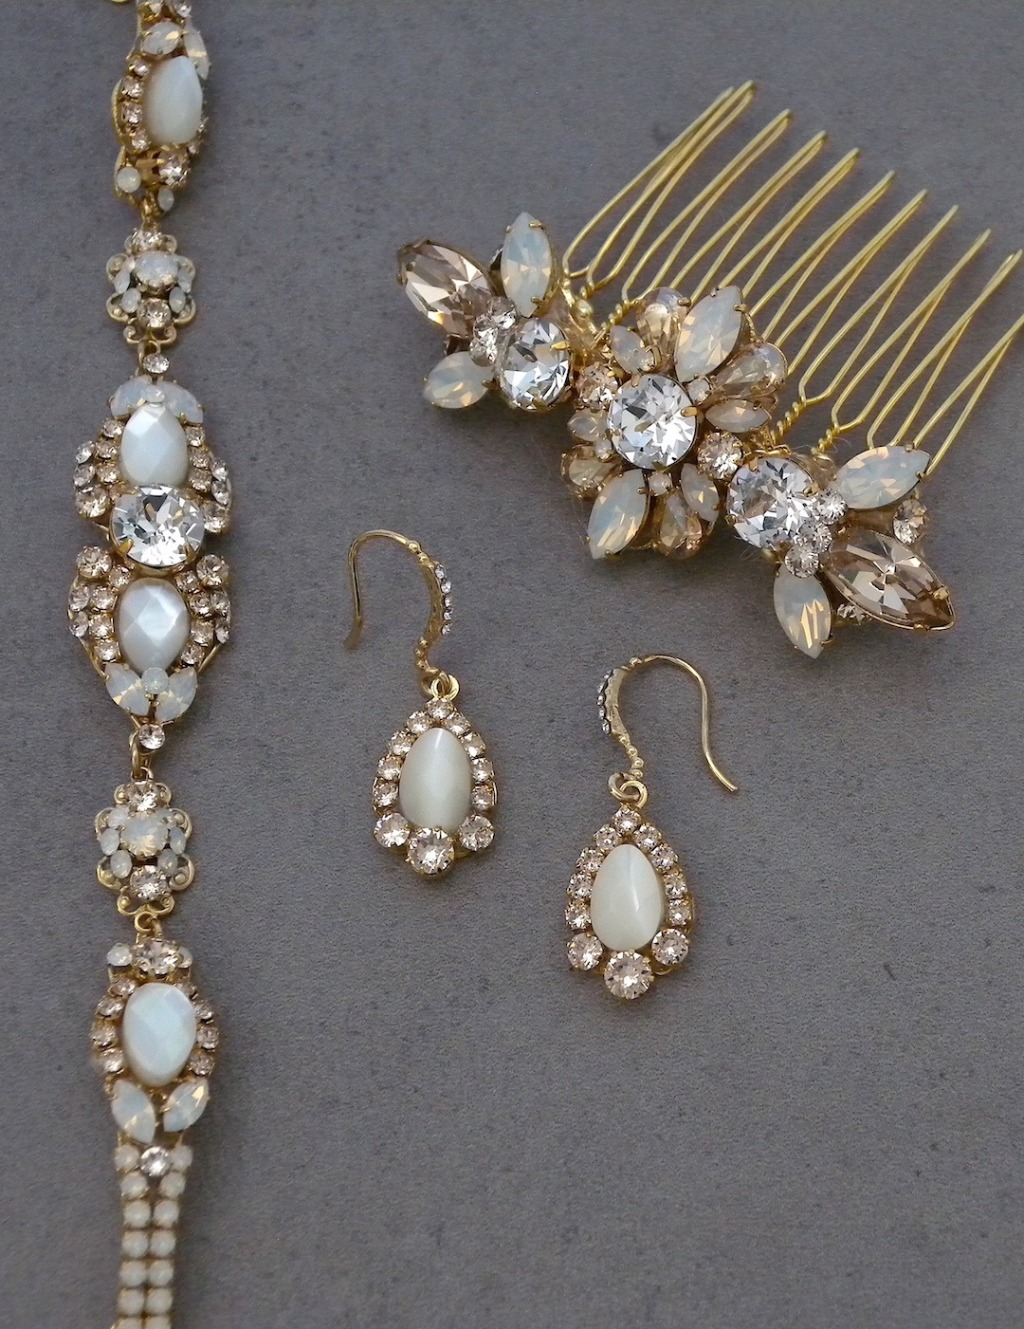 A toast to champagne! Just a few of our pieces from our Haute Bride Jewelry & Accessories collection. Bridal jewelry, earrings